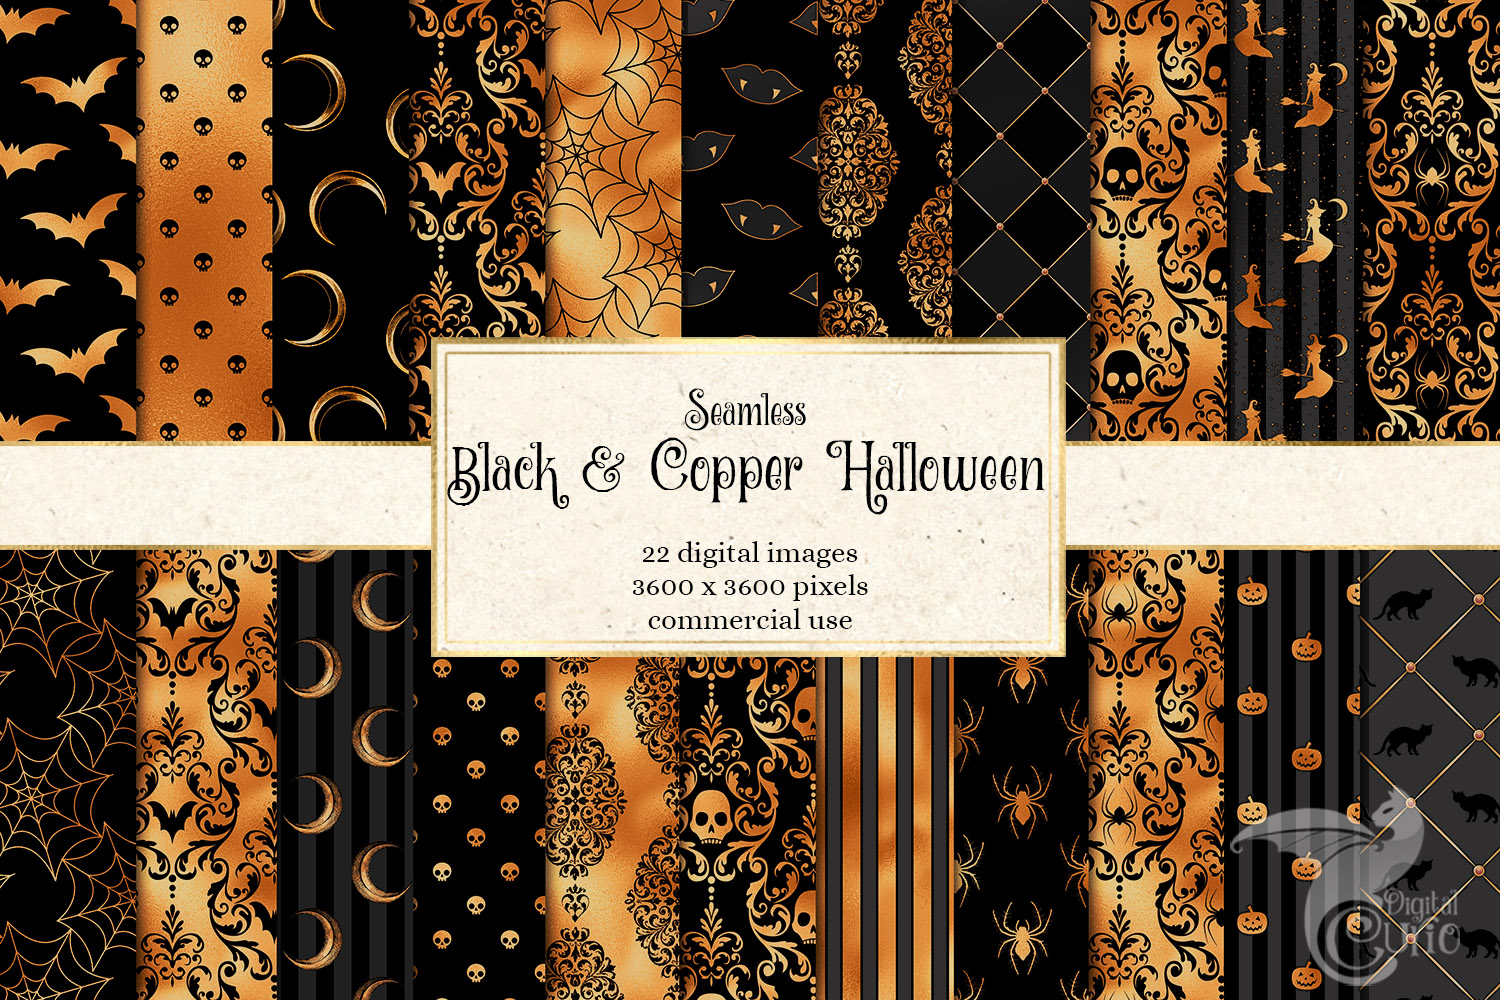 Black And Copper Halloween Digital Paper Graphic By Digital Curio Creative Fabrica